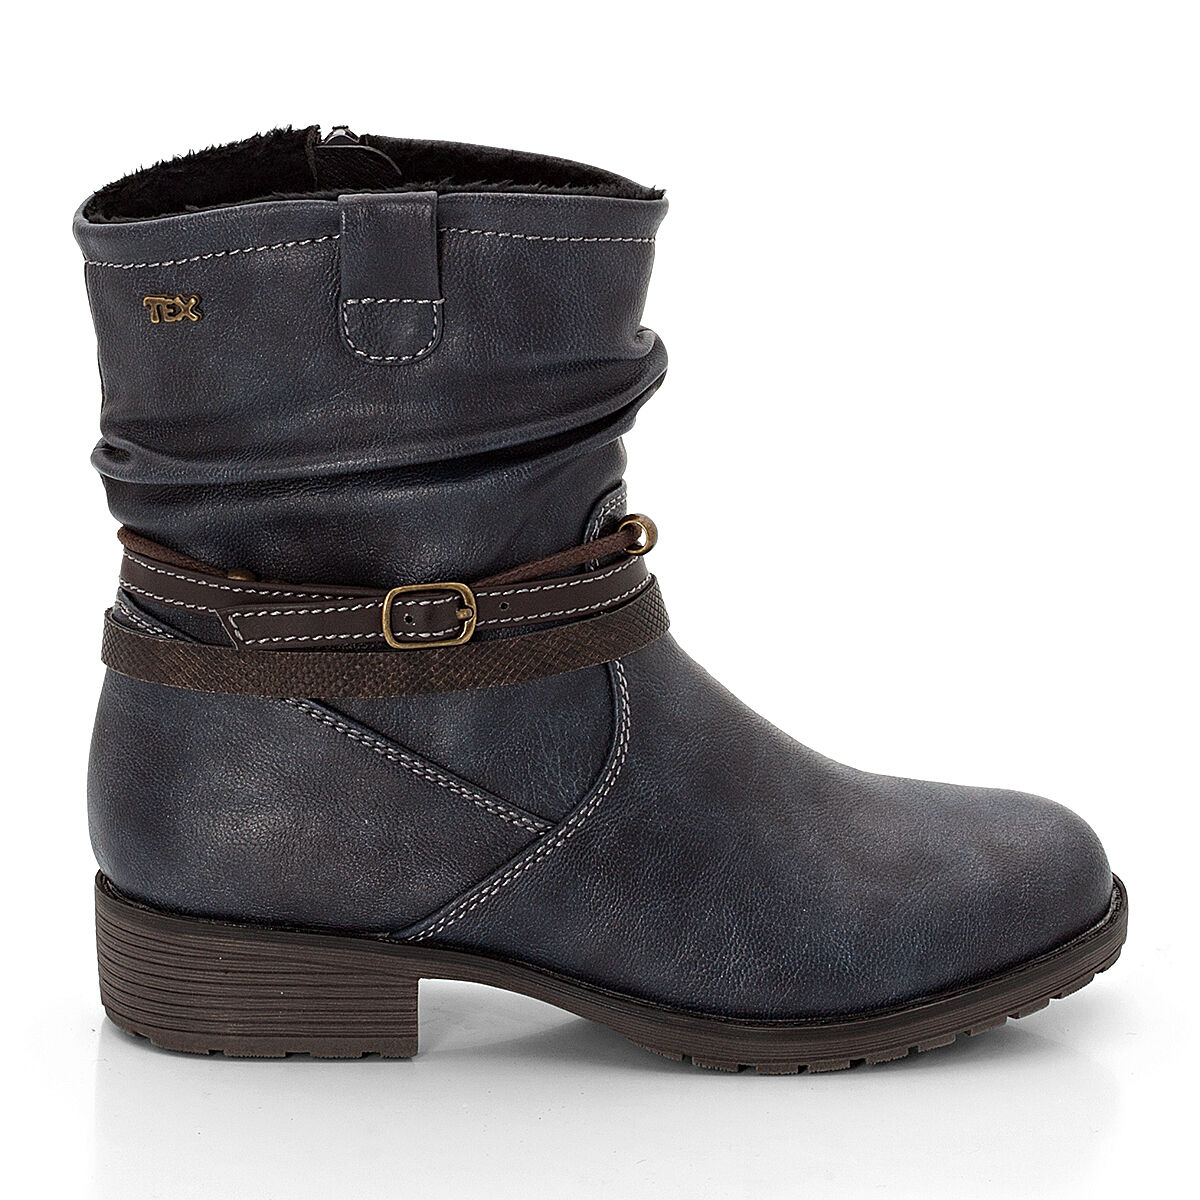 sneakers for cheap d001f 036d3 Mädchen Stiefel mit Appikationen, navy, 37